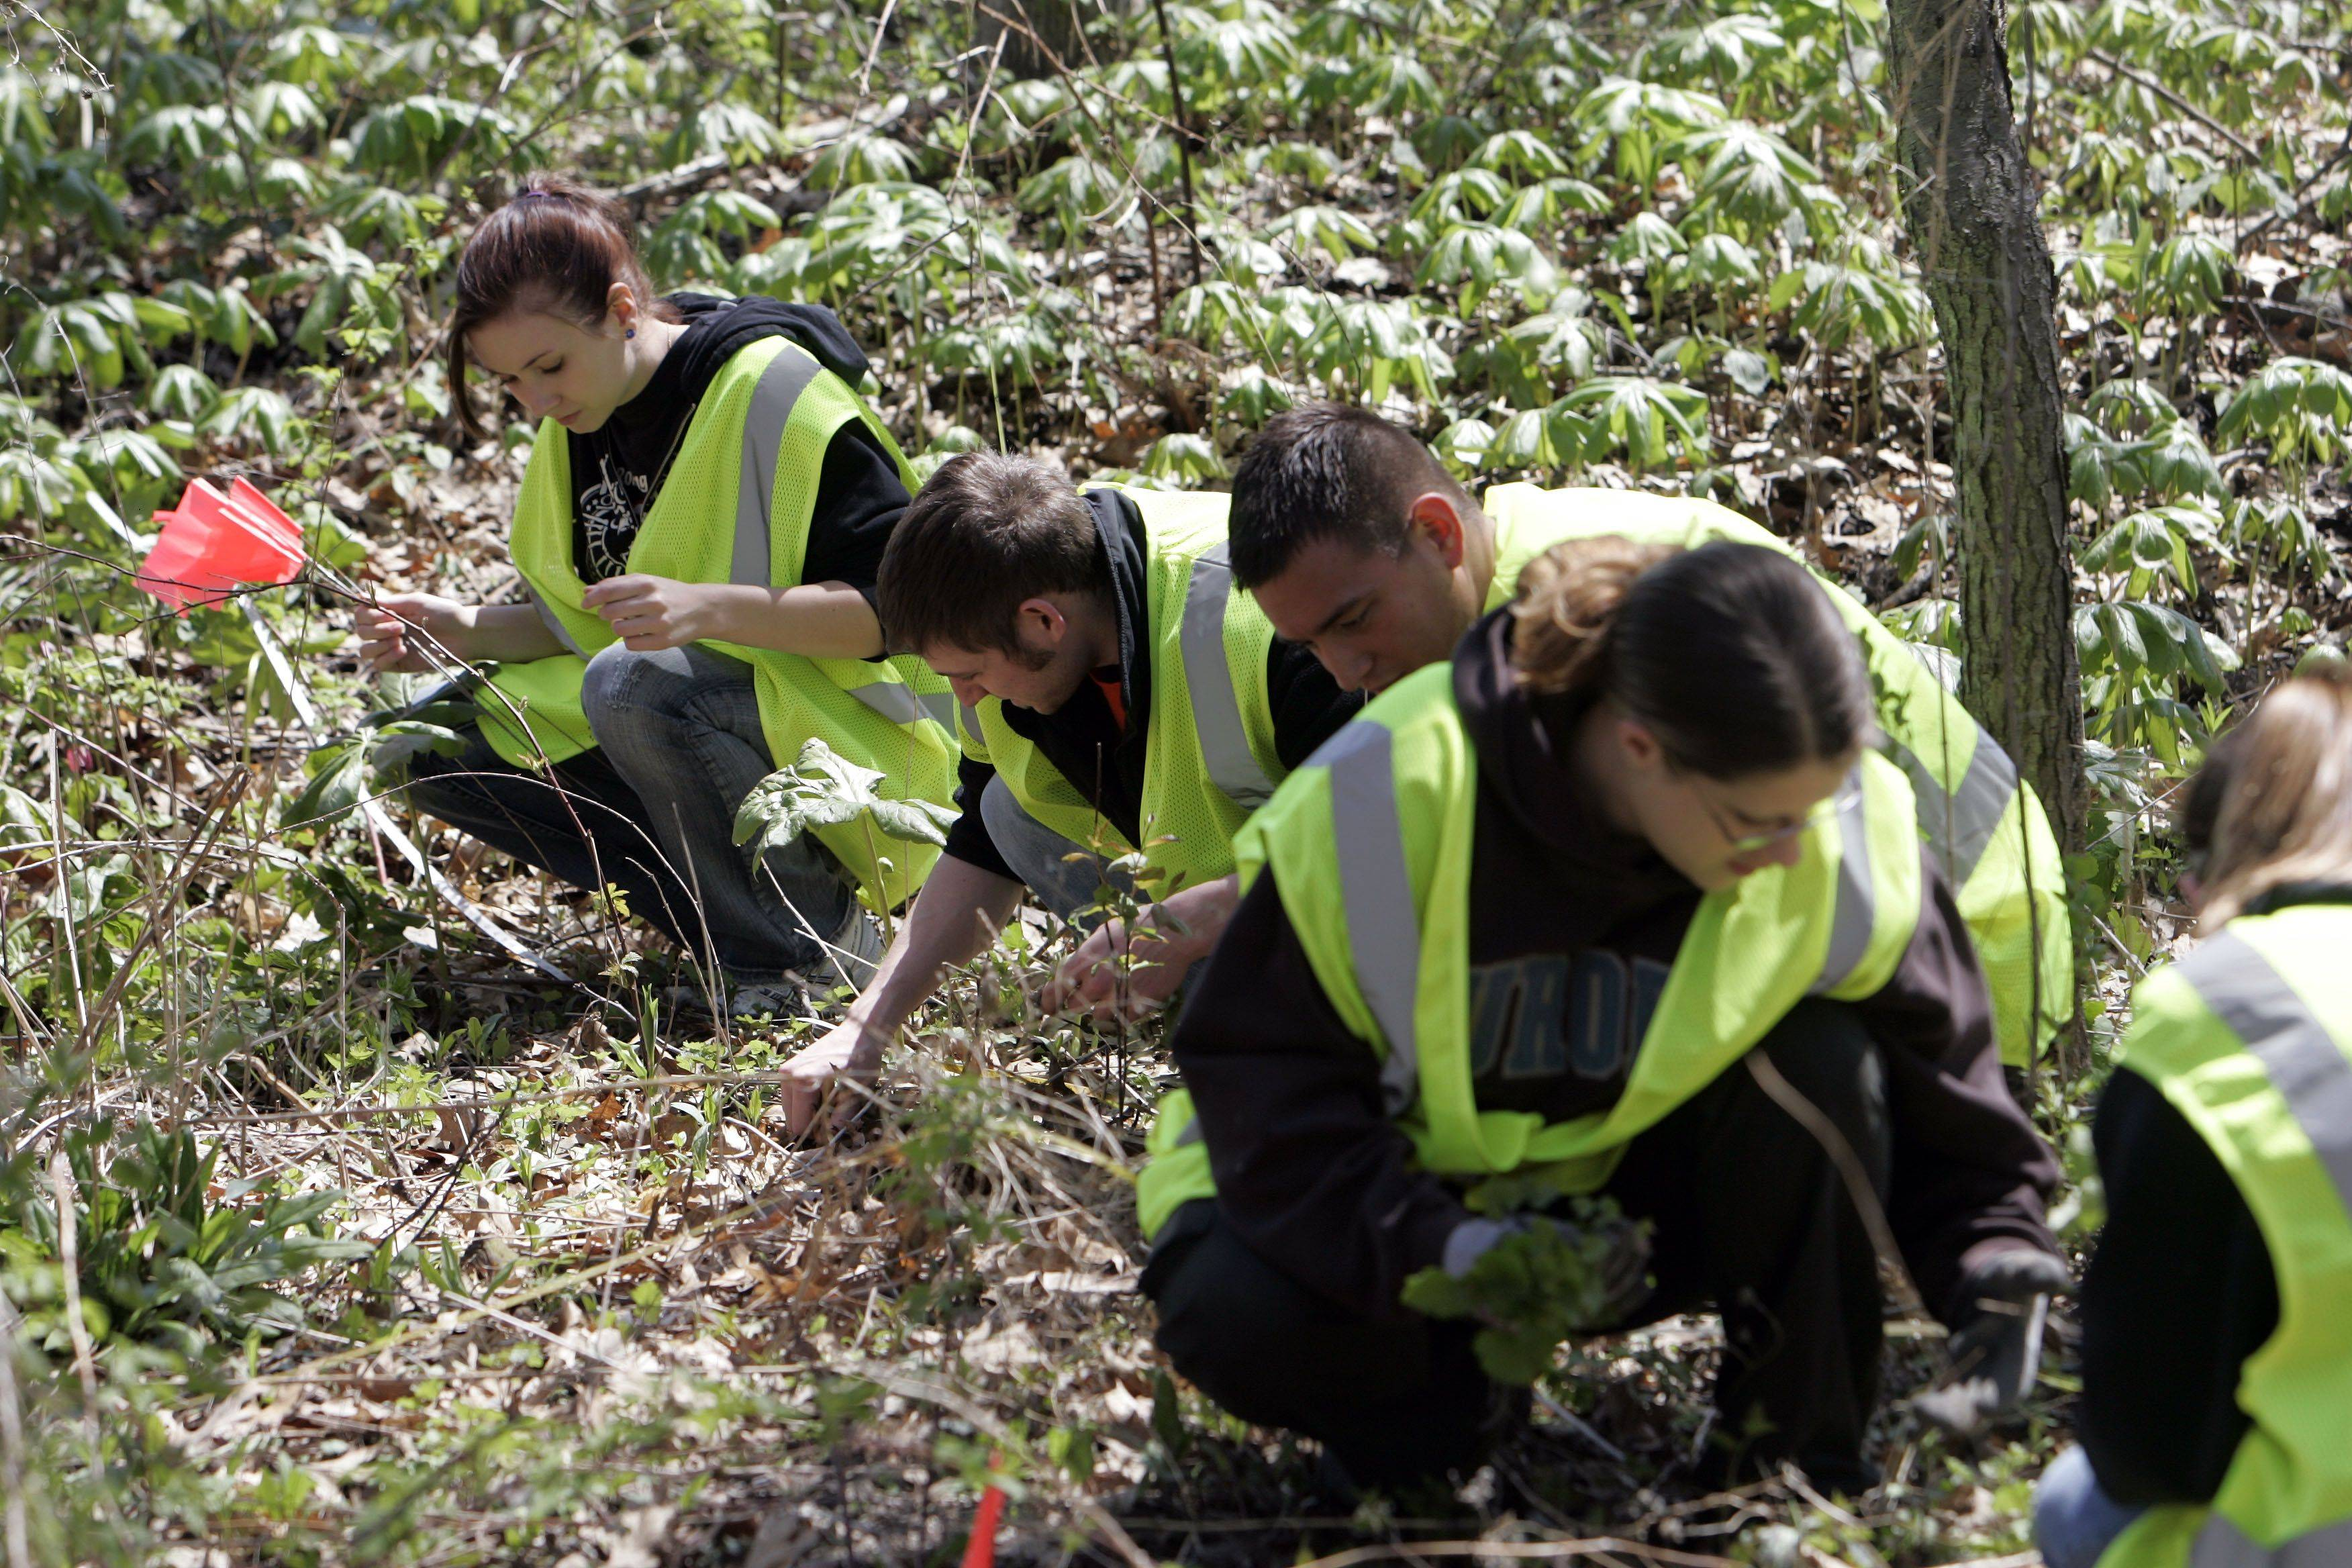 Christina Rogalske, of Lombard, top left, and students from Aurora University remove garlic mustard from Red Oak Nature Center in North Aurora Friday. The invasive plant has spread throughout the preserve causing indigenous species to pull back.